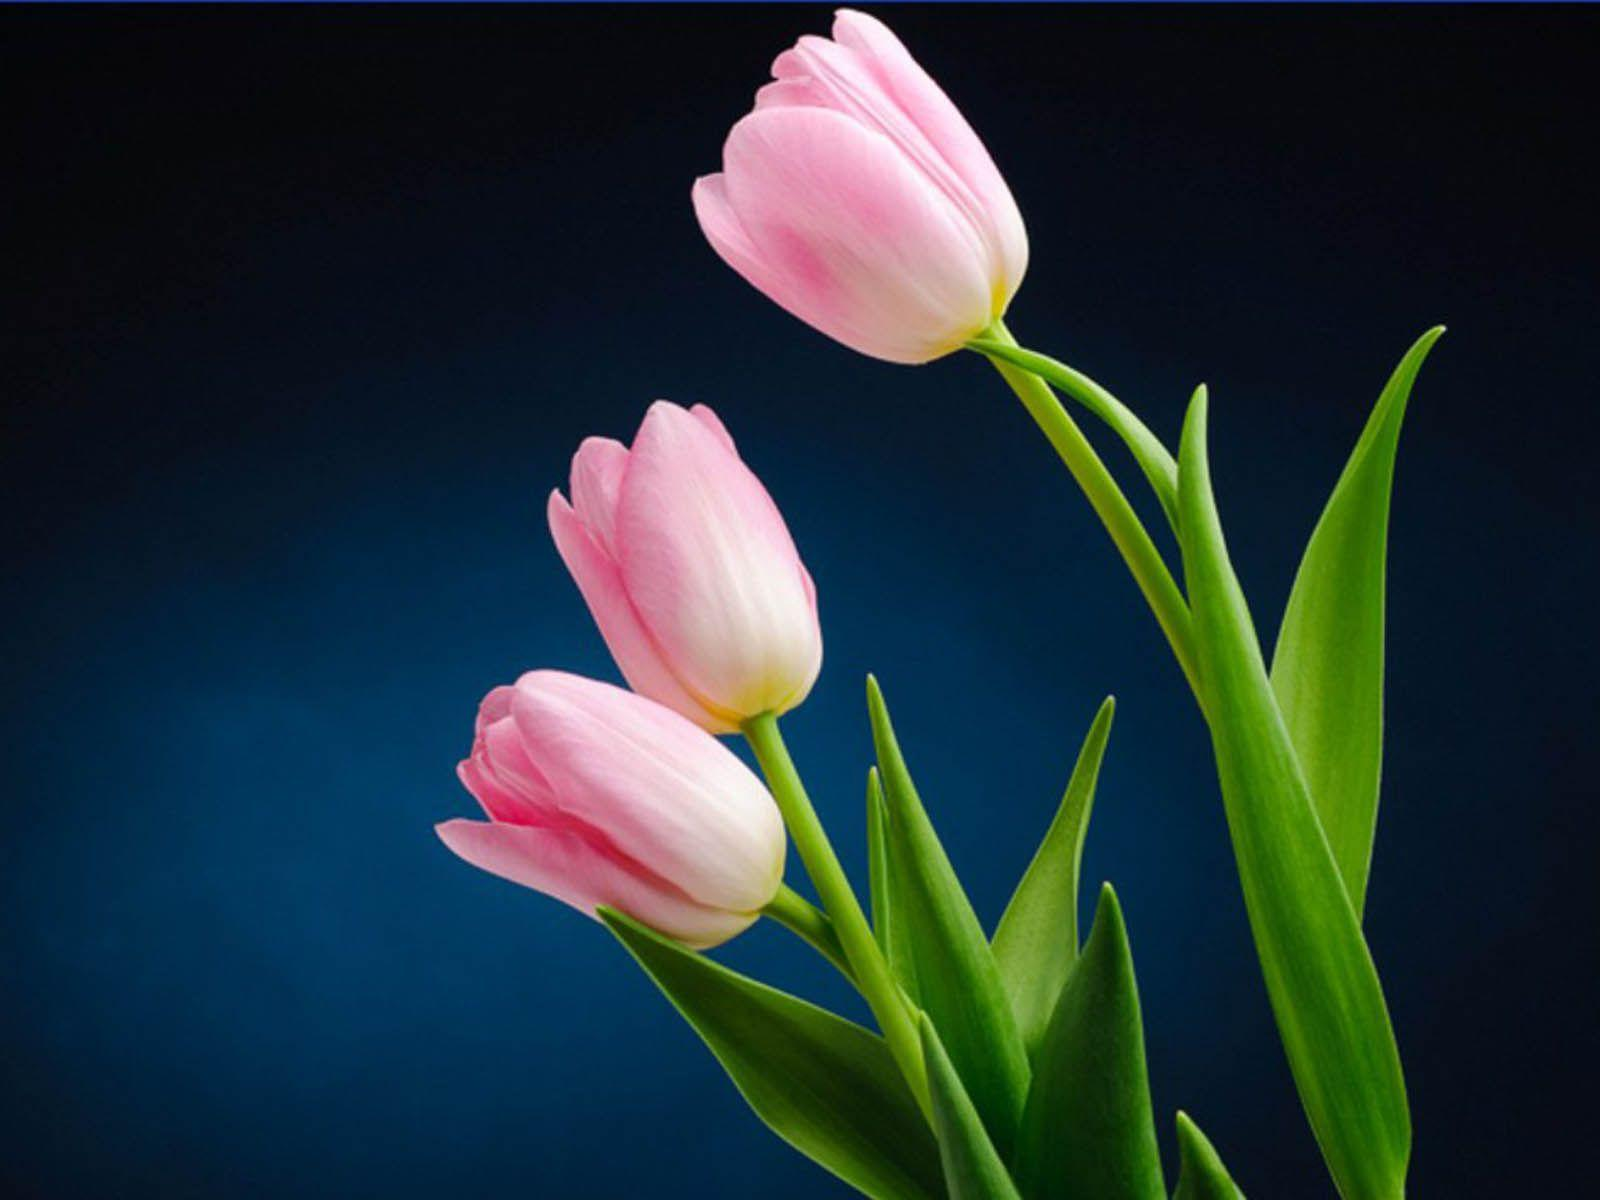 Pink Tulips Wallpapers - Wallpaper Cave